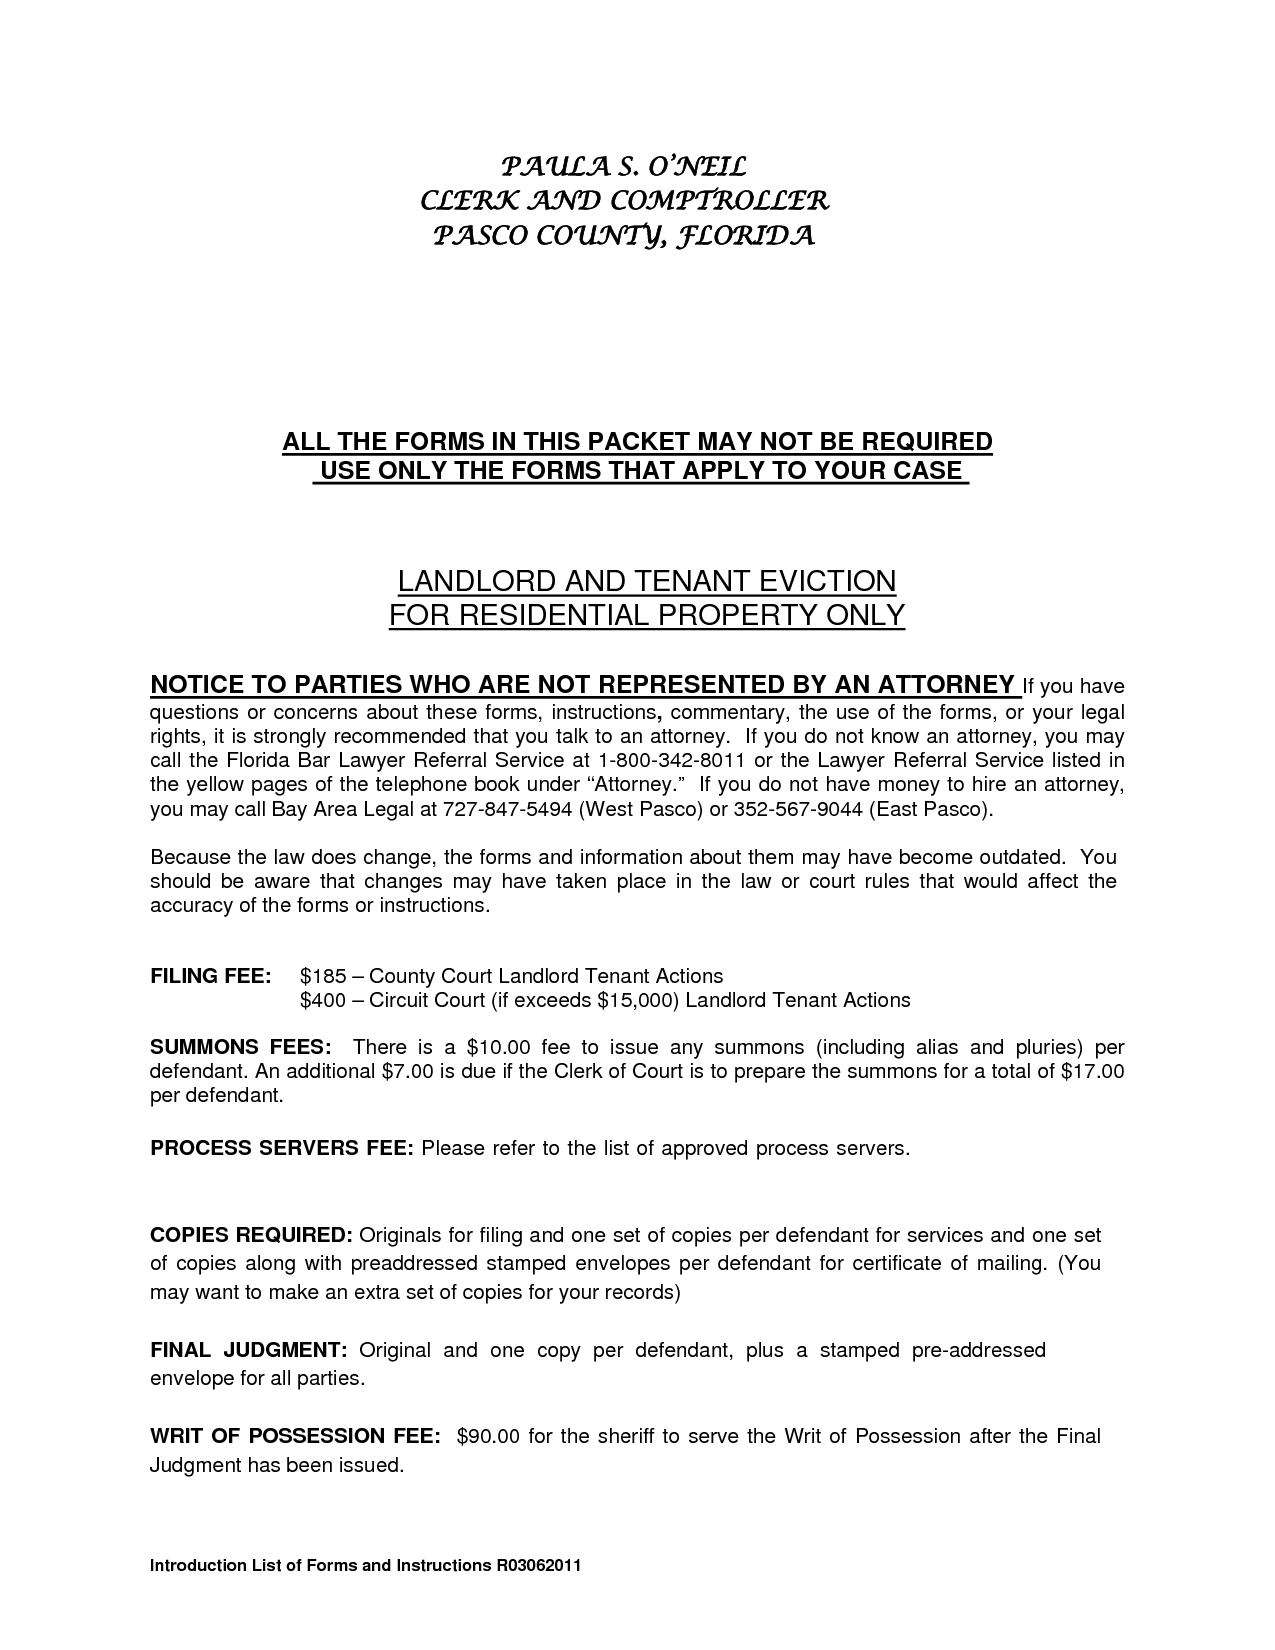 Landlord Eviction Letter Template - Residential Landlord Tenant Eviction Notice form by Ere